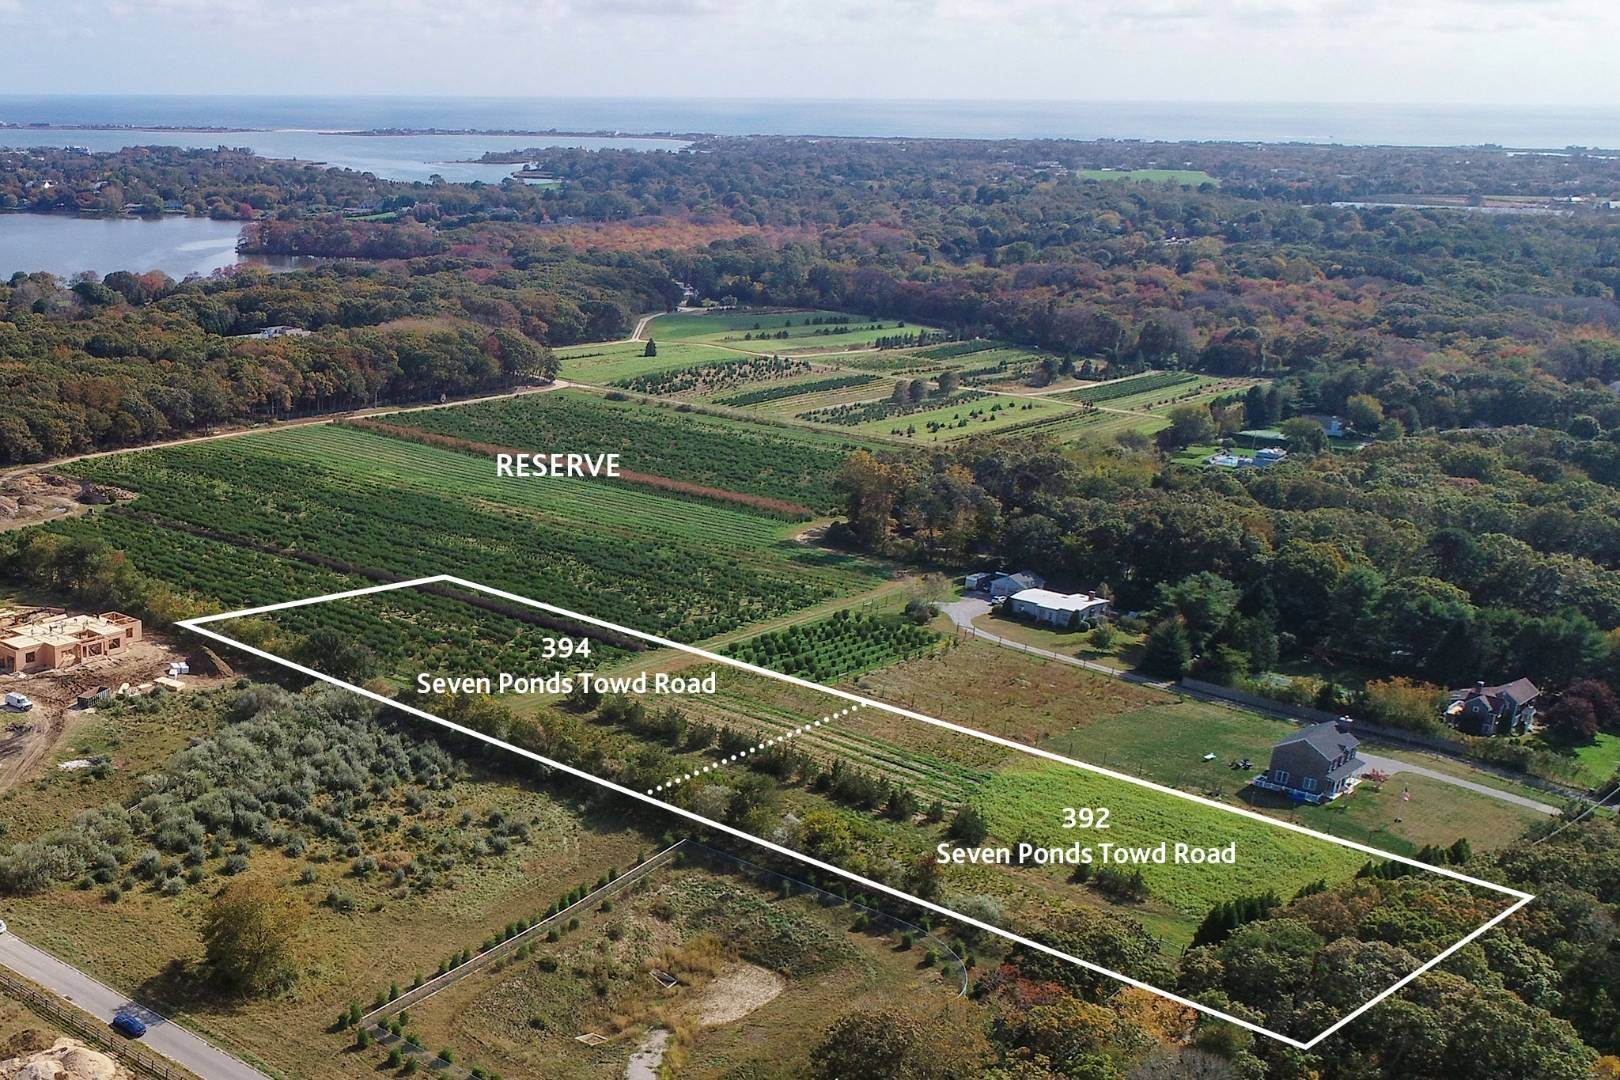 Land for Sale at Generous Vacant Parcel Overlooking Large Reserve 392 Seven Ponds Towd Road, Water Mill, NY 11976